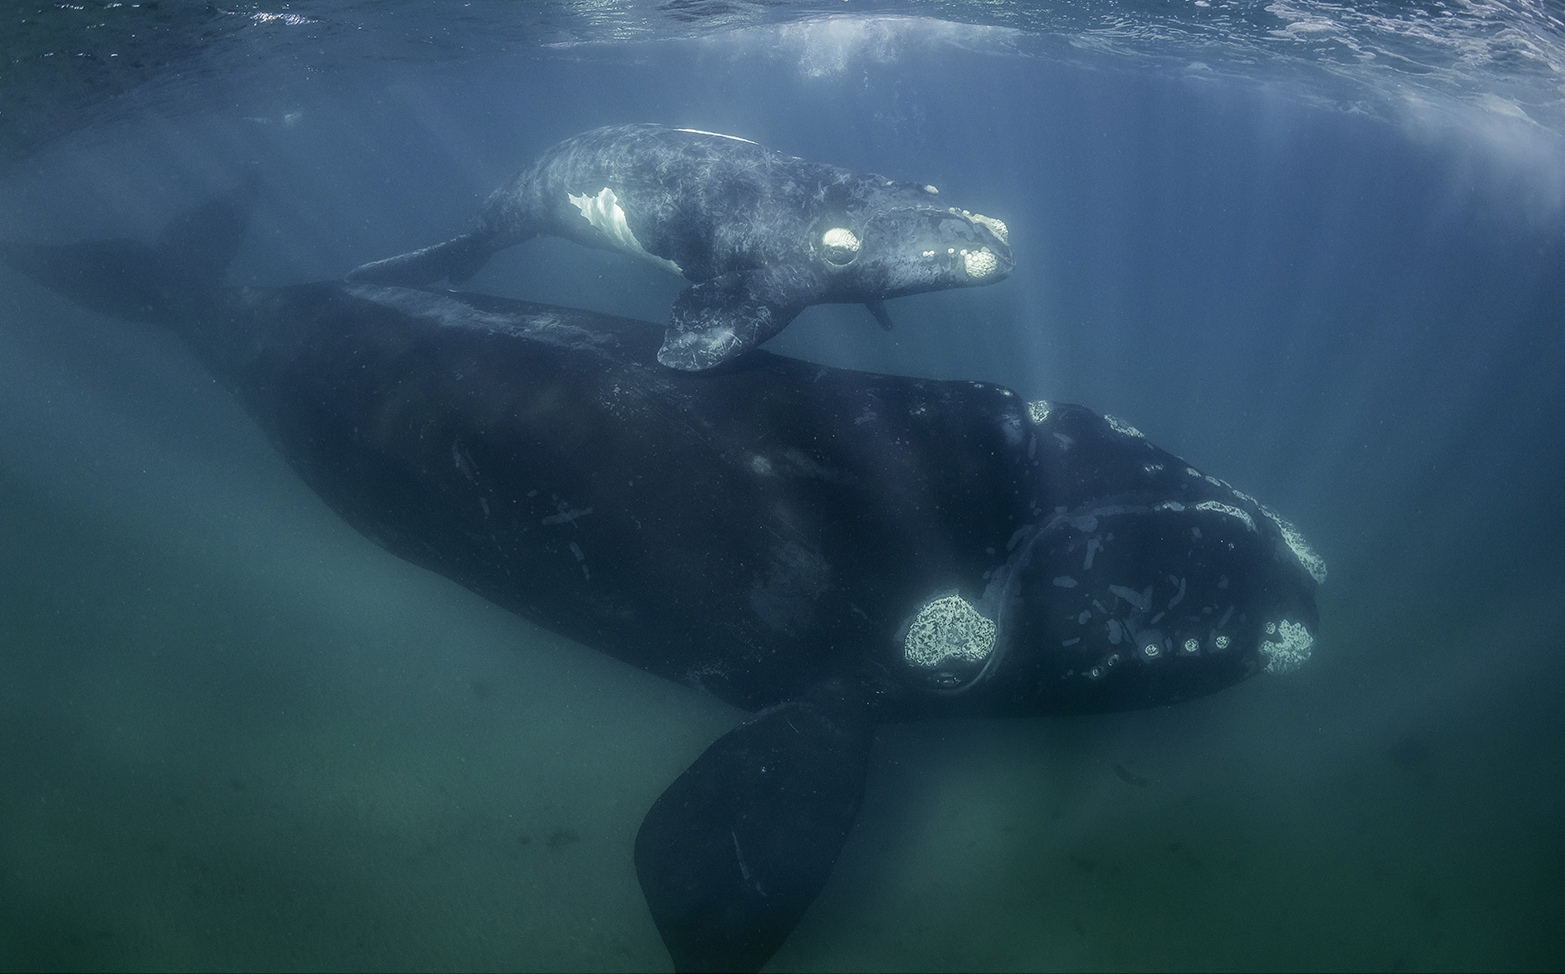 """North Atlantic Right Whale (Eubalaena glacialis) - A massive right whale mama and her calf; Read more about these mammals at <a href=""""https://www.fisheries.noaa.gov/species/north-atlantic-right-whale"""">https://www.fisheries.noaa.gov/species/north-atlantic-right-whale</a>."""